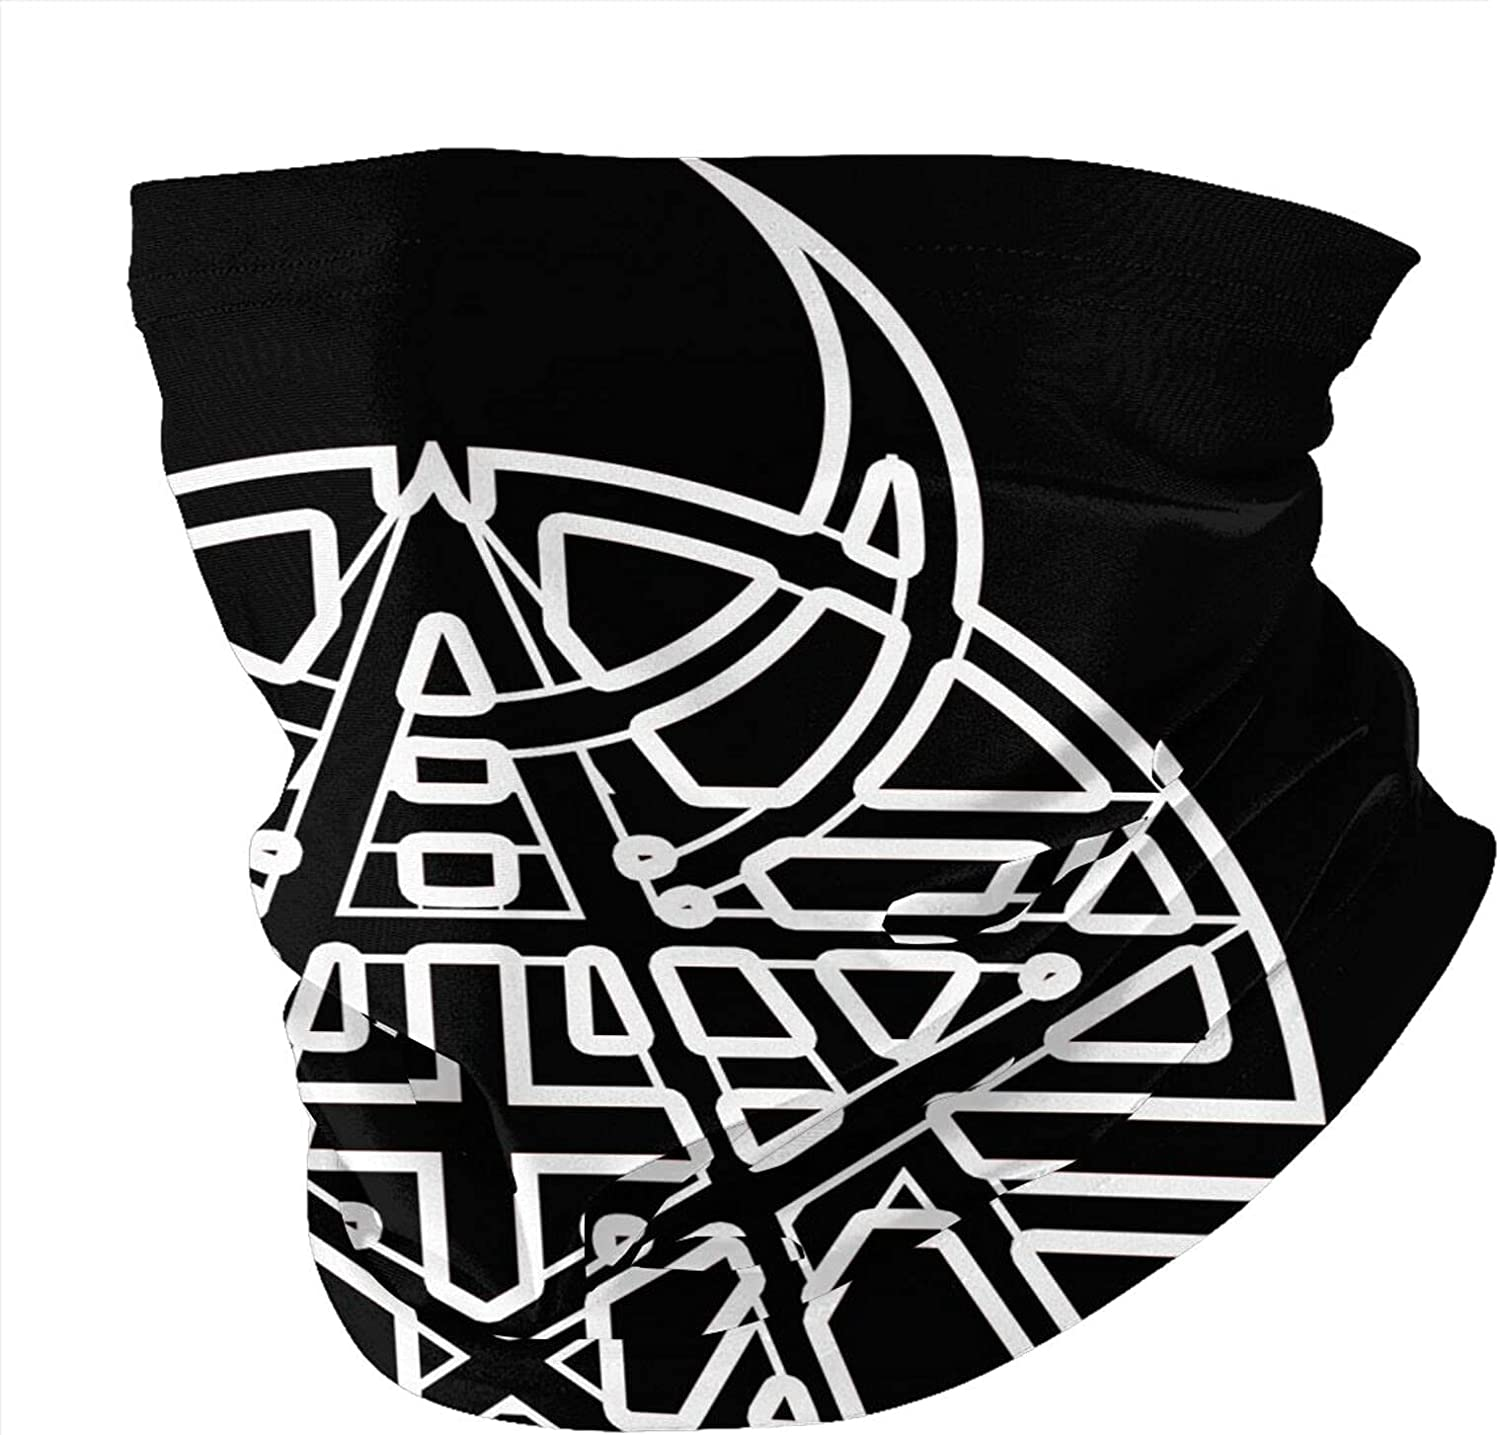 Disturbed Logo Unisex Neck Gaiter Face Mask Men'S Woman Multifunction Balaclava Face Cover,Cycling Mask,Sport Neck Gaiter,Hiking Scarf,Fishing Mask, Motorcycle Face Cover